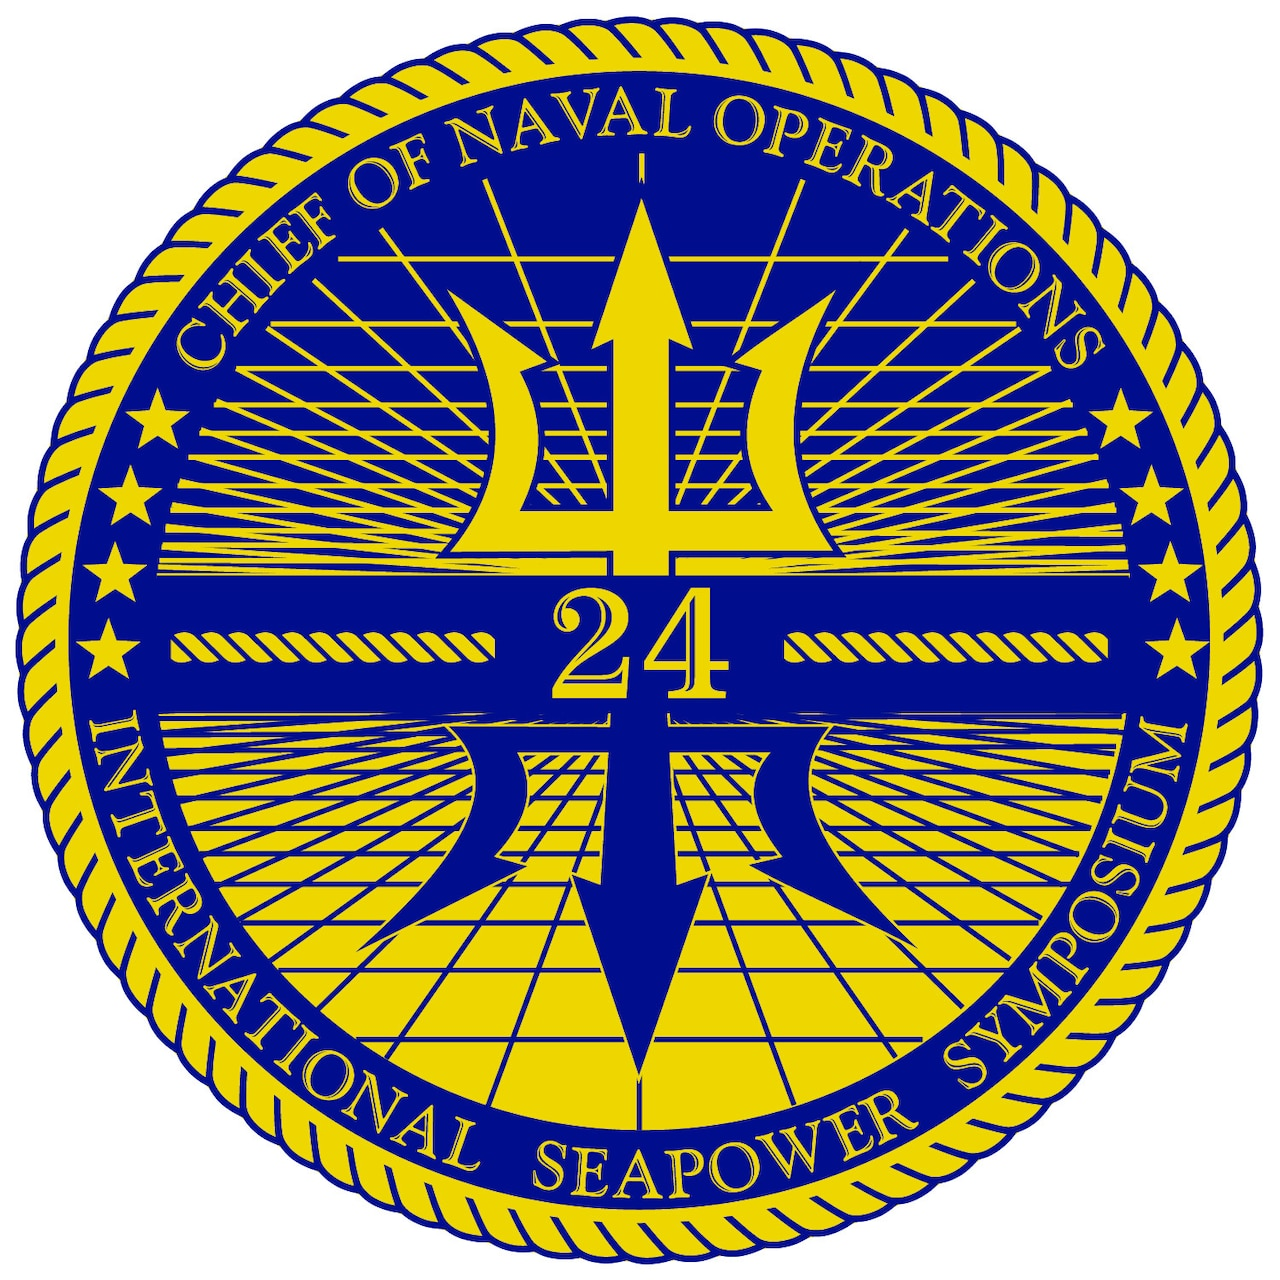 """A graphic shows a gold 24 and a blue and gold mirrored trident surrounded by globe-like lines and words that read """"Chief of Naval Operations"""" and """"International Seapower Symposium"""" surrounded by a gold rope."""